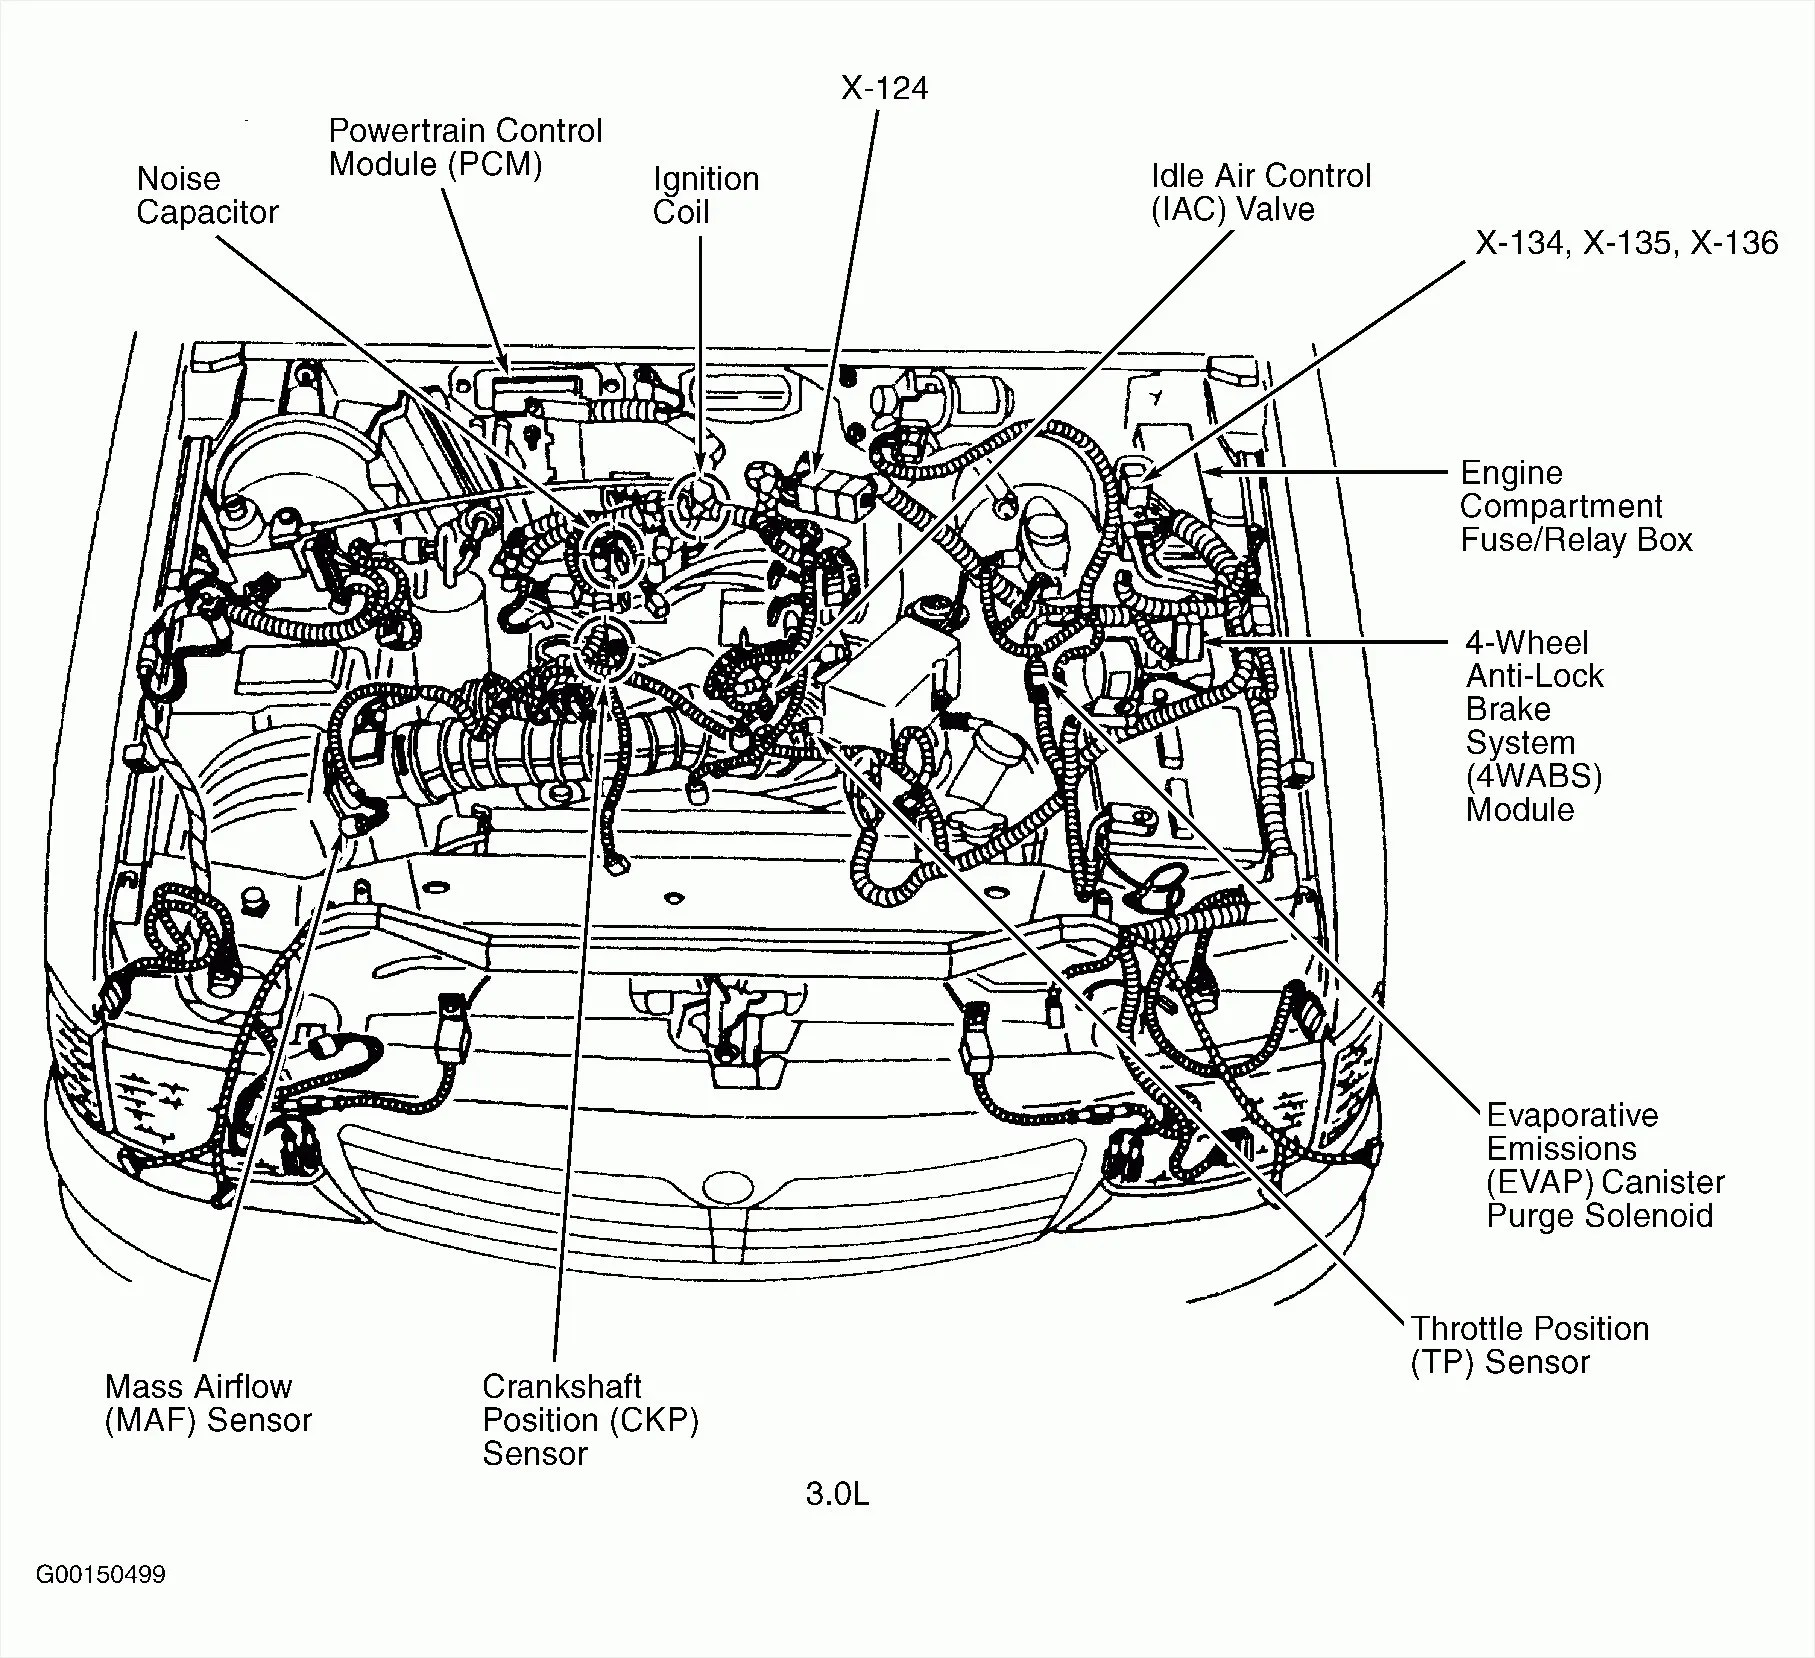 hight resolution of pontiac sunbird engine diagram wiring diagram operations 1997 subaru legacy wiring diagram pontiac sunfire 2